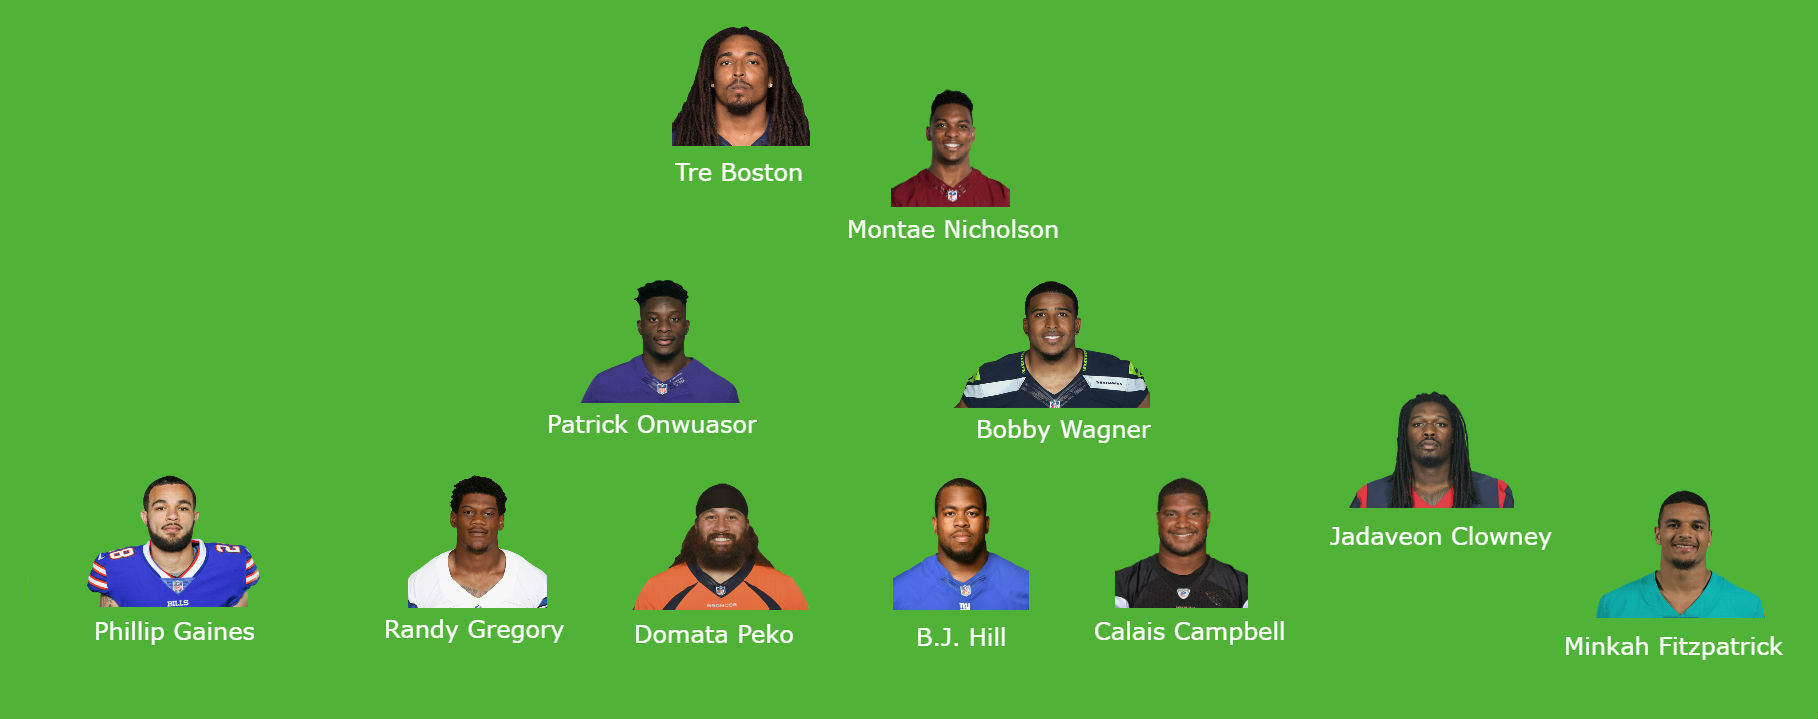 nfl-all-penalty-team-defense-position-players